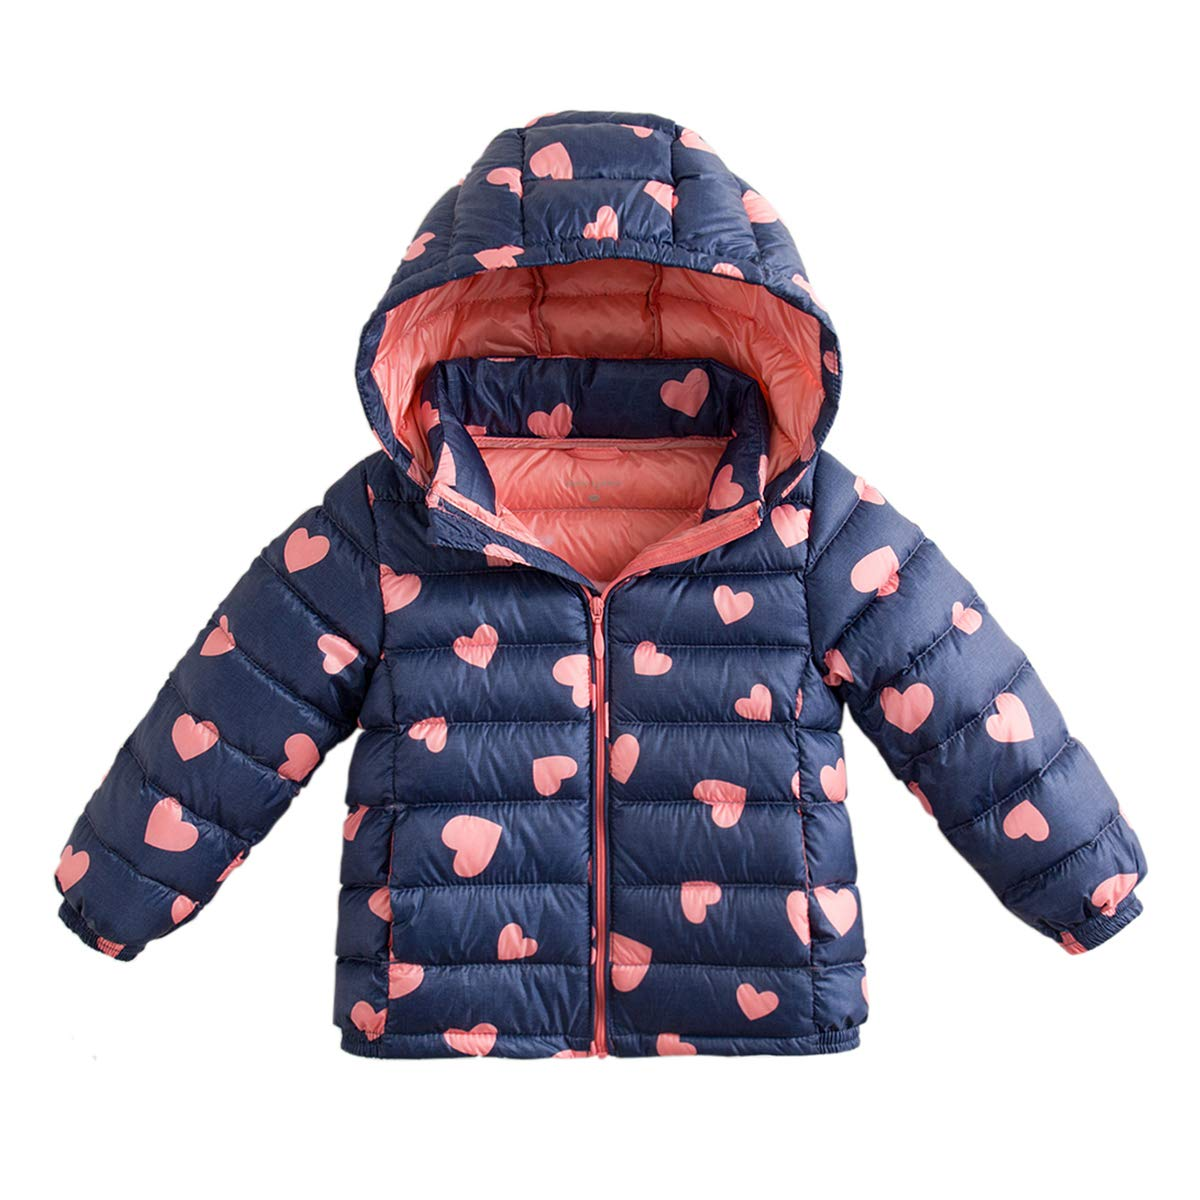 marc janie Little Boys Girls' Winter Pattern Printing Ultra Light Weight Down Jacket Blue Pink Love 3T (90 cm) by marc janie (Image #1)